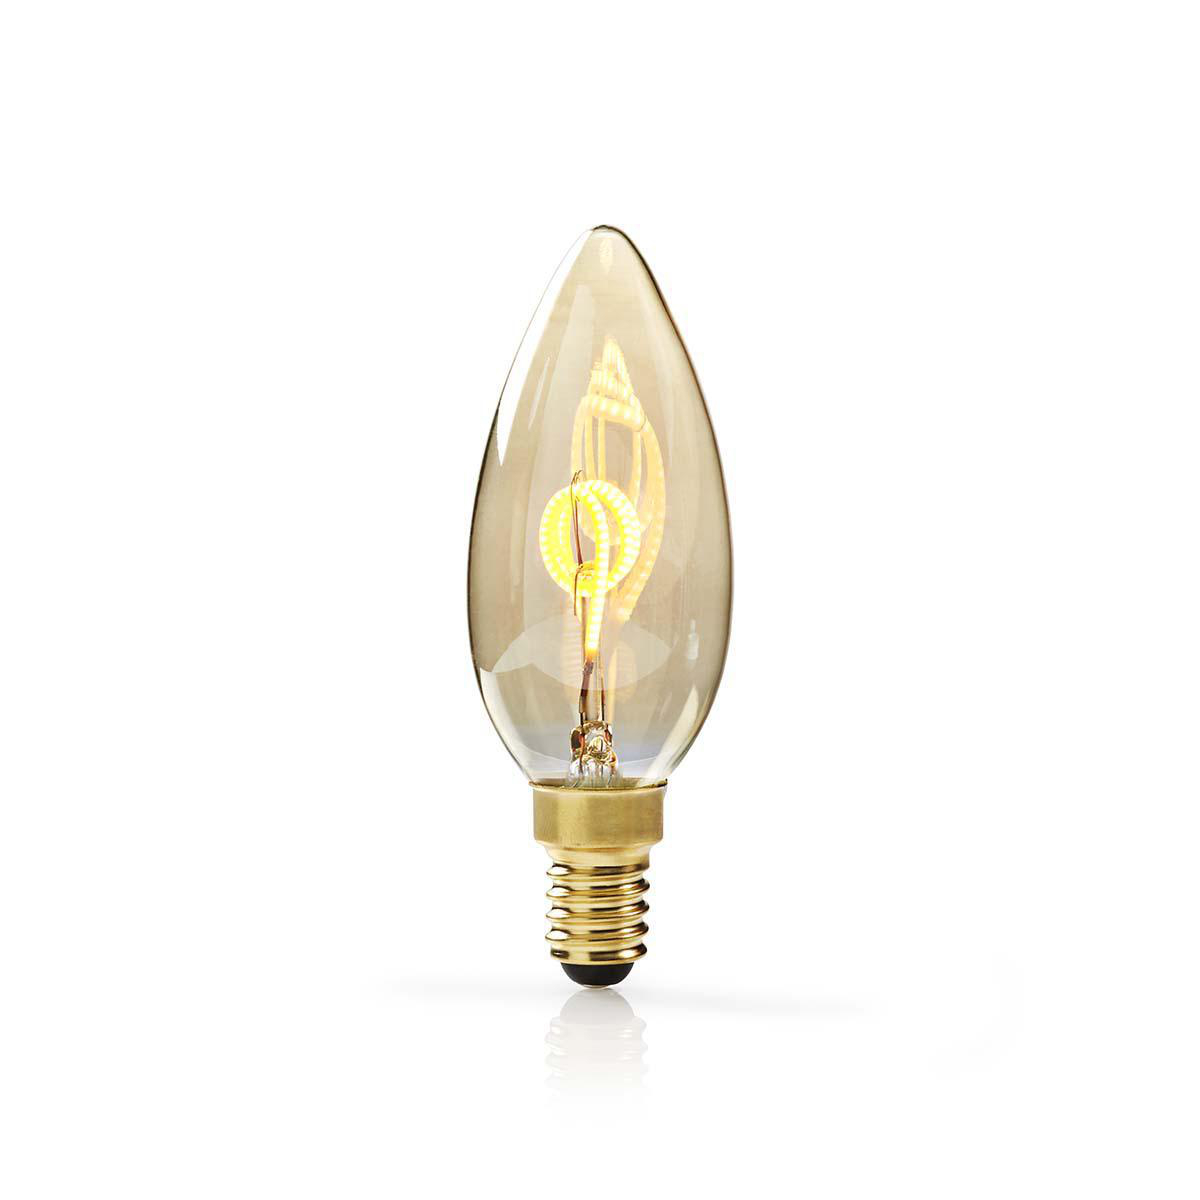 Dimmbare Led E14 Dimmable Led Vintage Filament Lamp E14 Candle 3 W 100 Lm Nedis